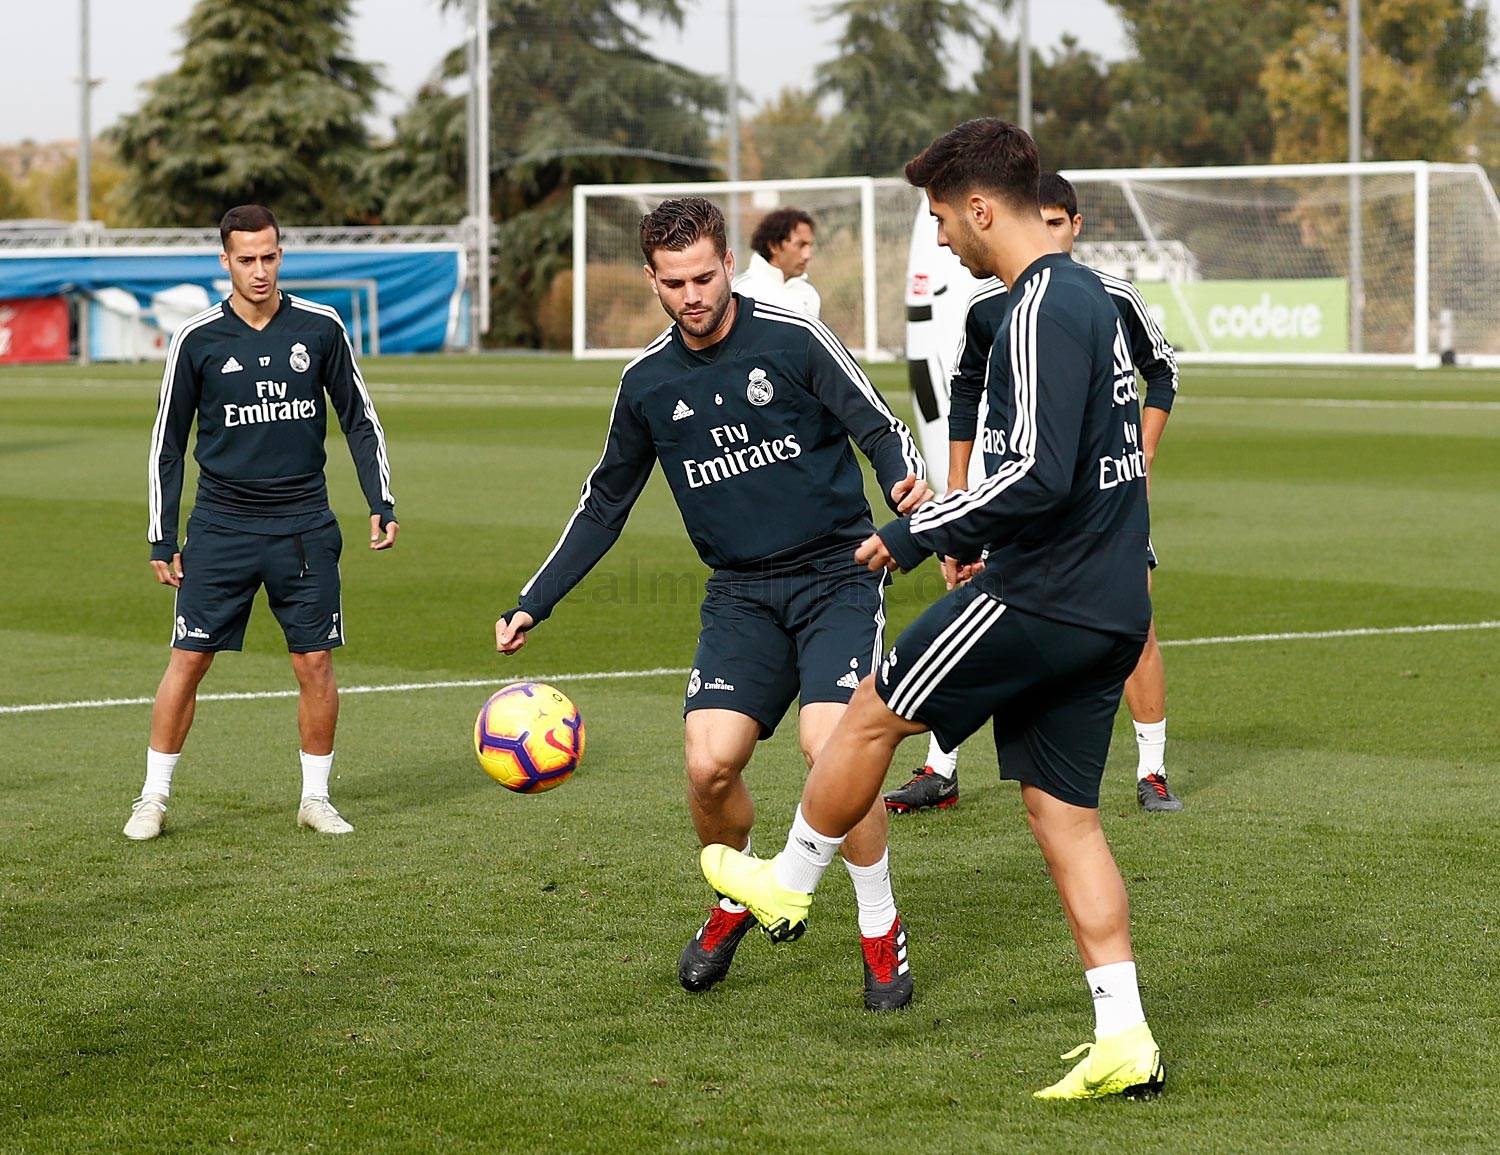 Real Madrid - Entrenamiento del Real Madrid - 26-10-2018